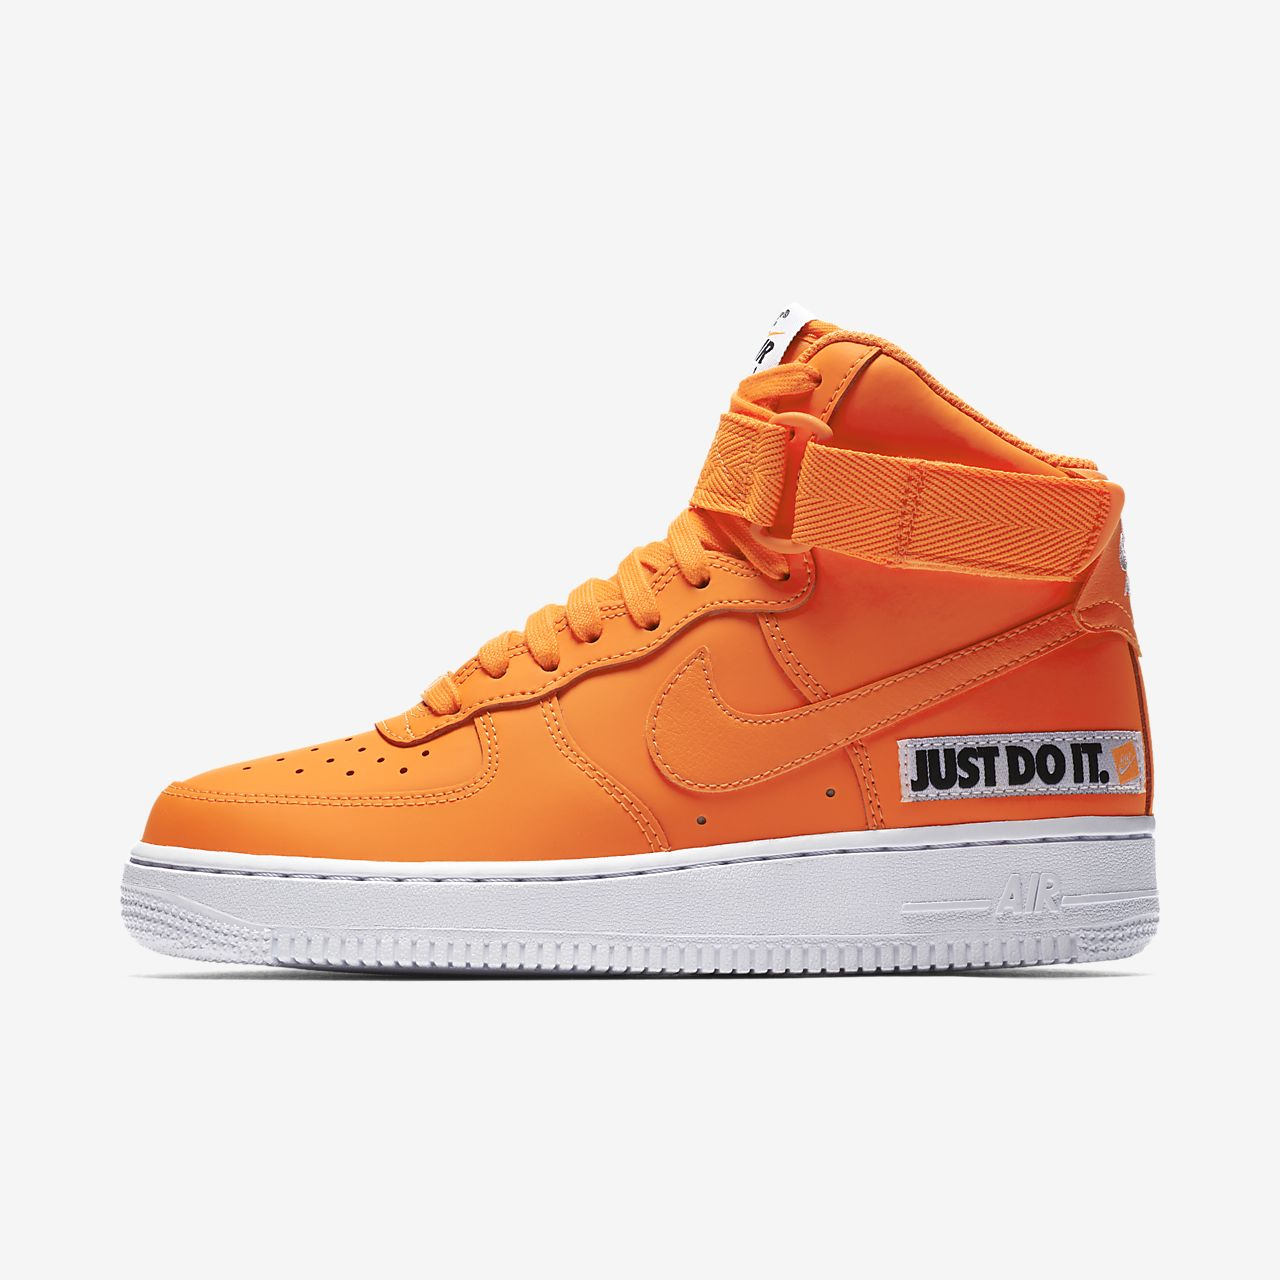 Nike Air Force 1 High LX Leather Women's Shoe